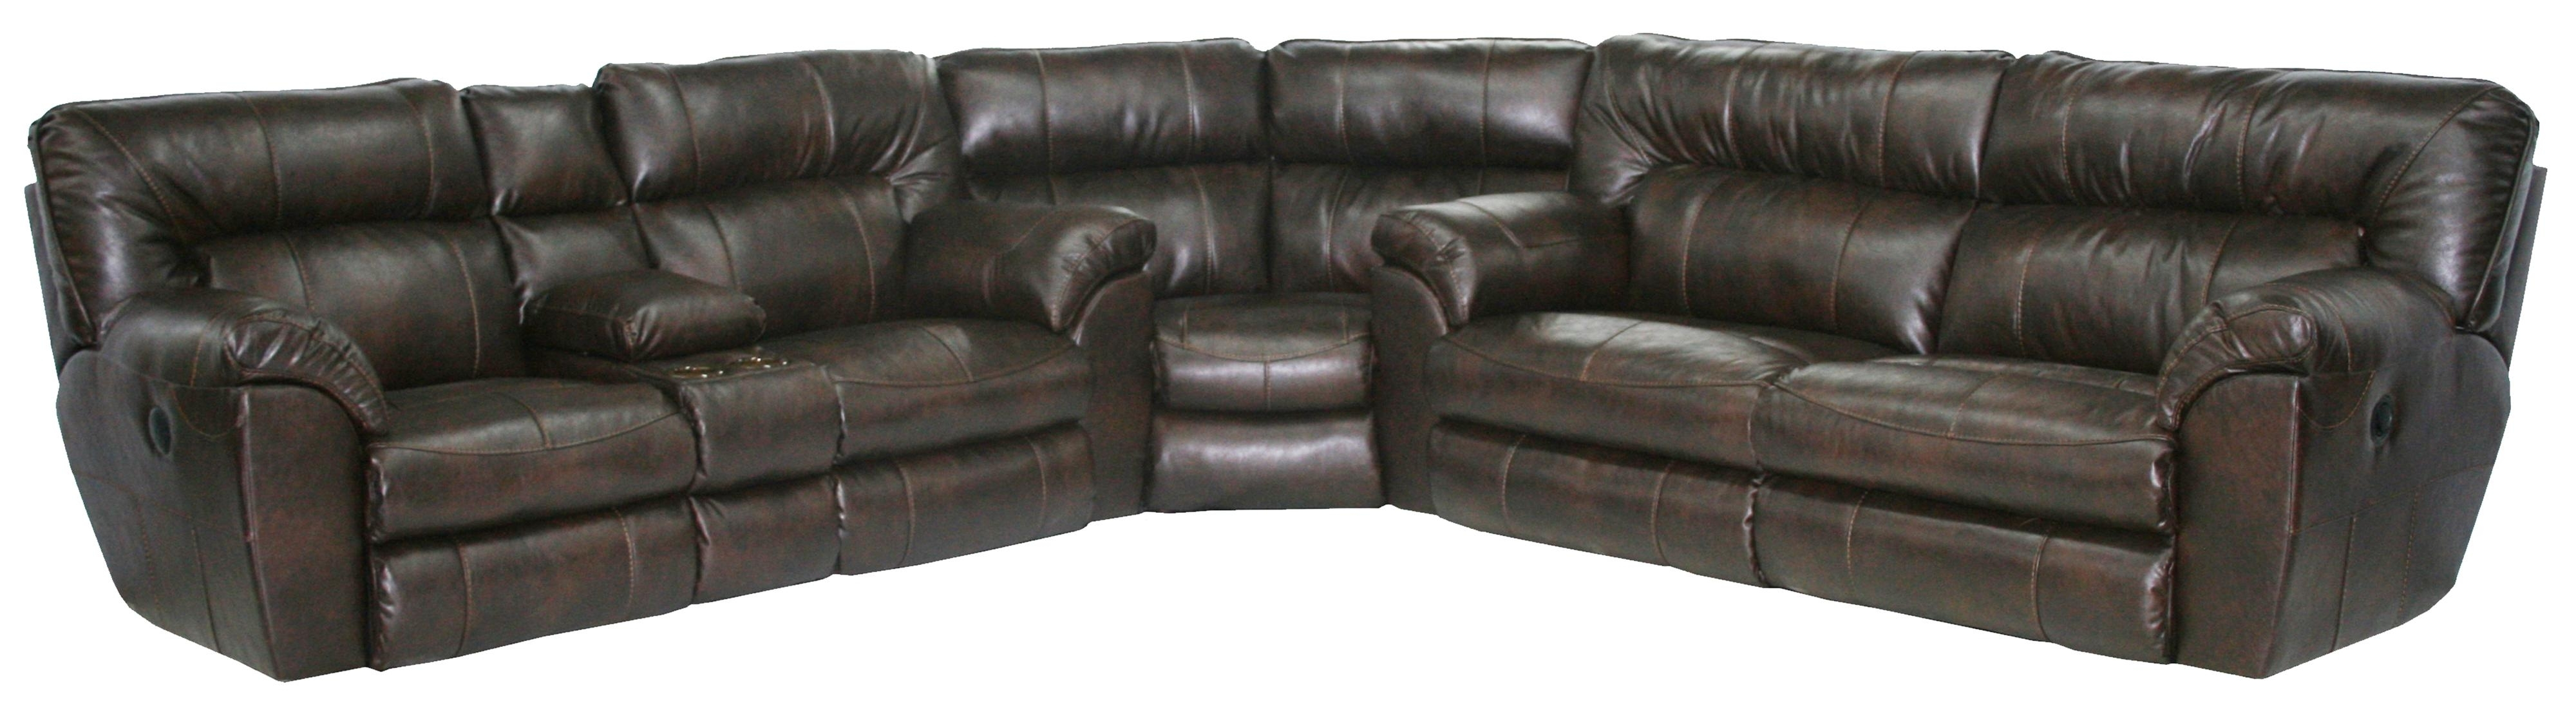 Power Reclining Sectional Sofa With Left Consolecatnapper | Wolf Throughout Sectional Sofas With Consoles (Image 4 of 10)